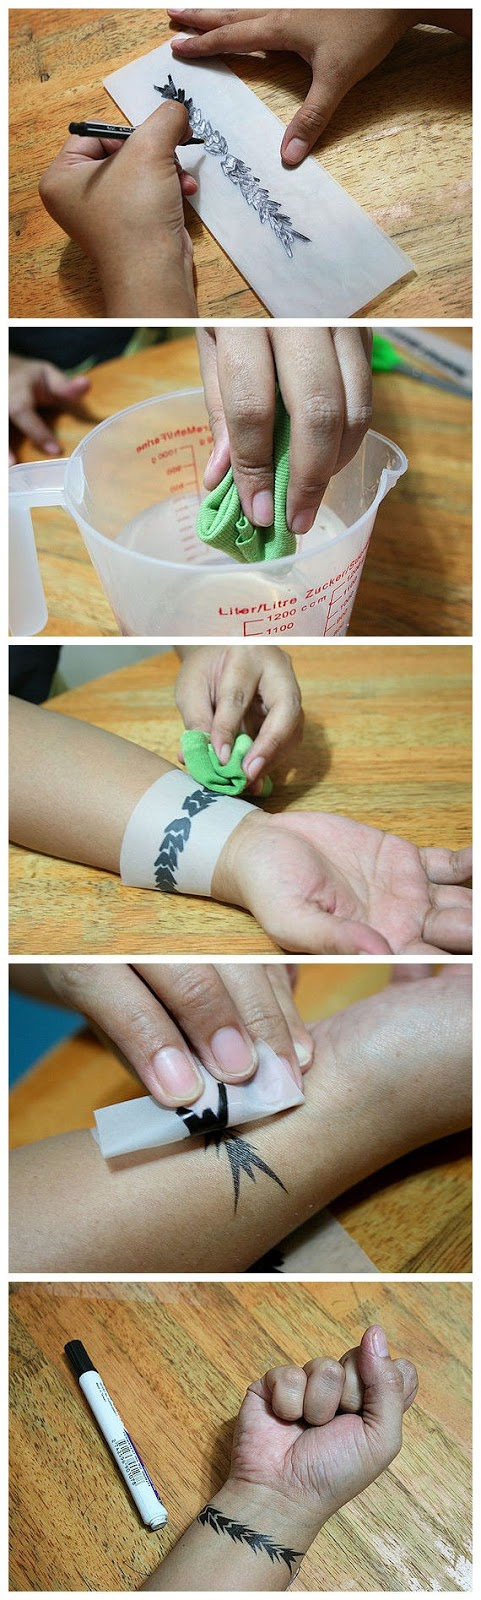 How-to-Create-Your-Own-Temporary-Tattoo-using-a-gel-pin-and-your-imagination-Full-Instructions-on-wallpaper-wp3606977